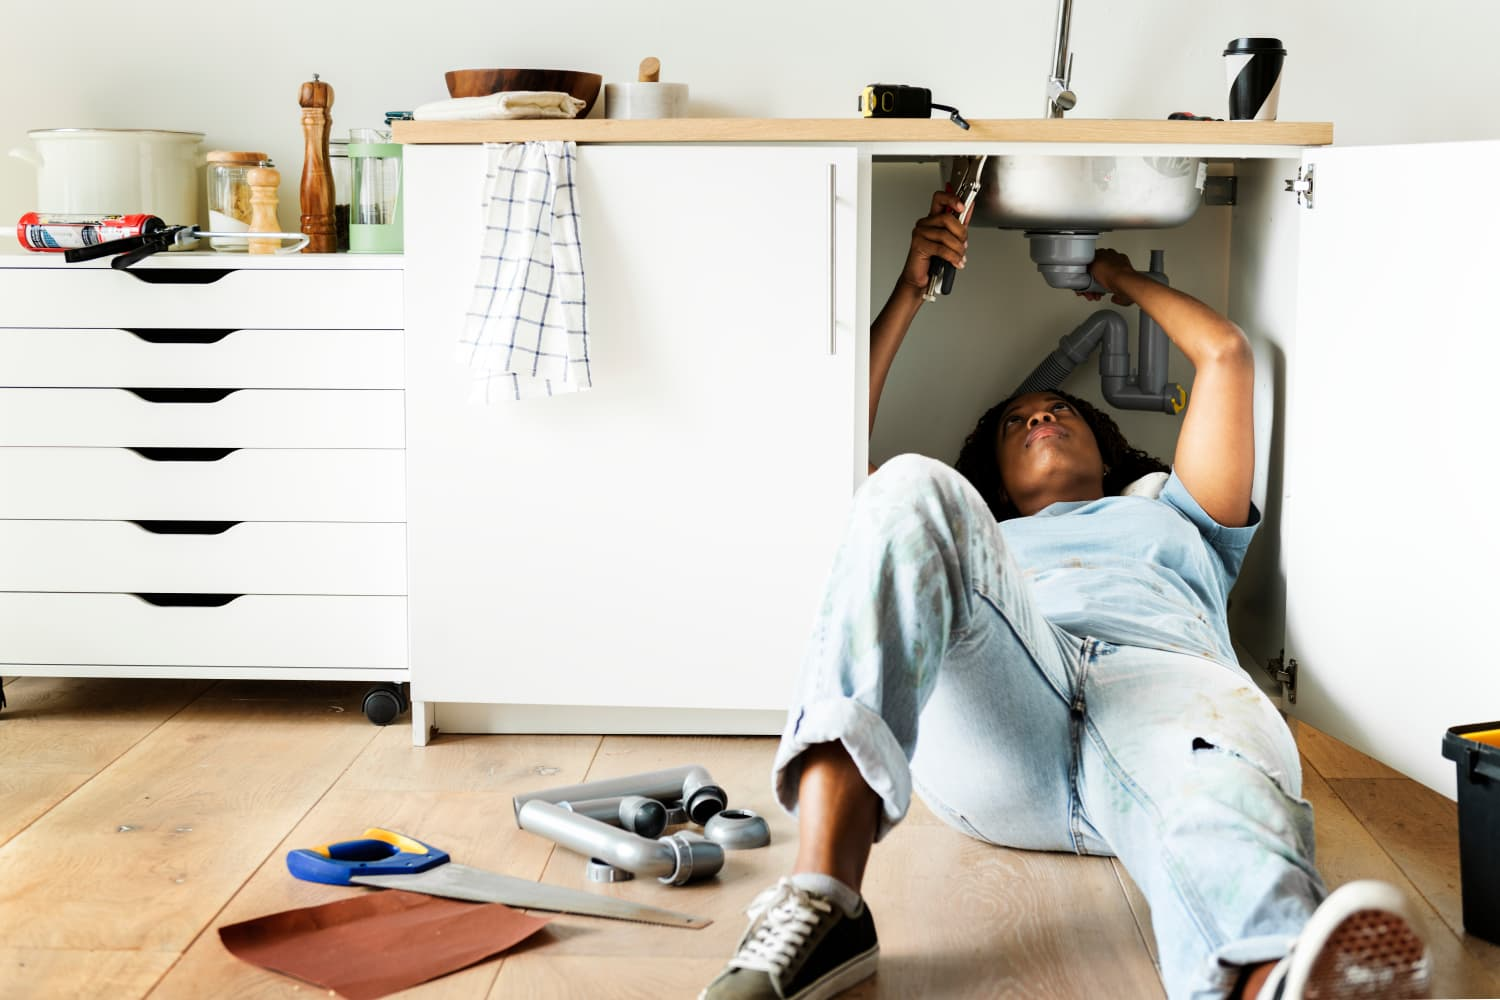 4 Easy Fixes to Make Once You Get Your Home Inspection Report Back